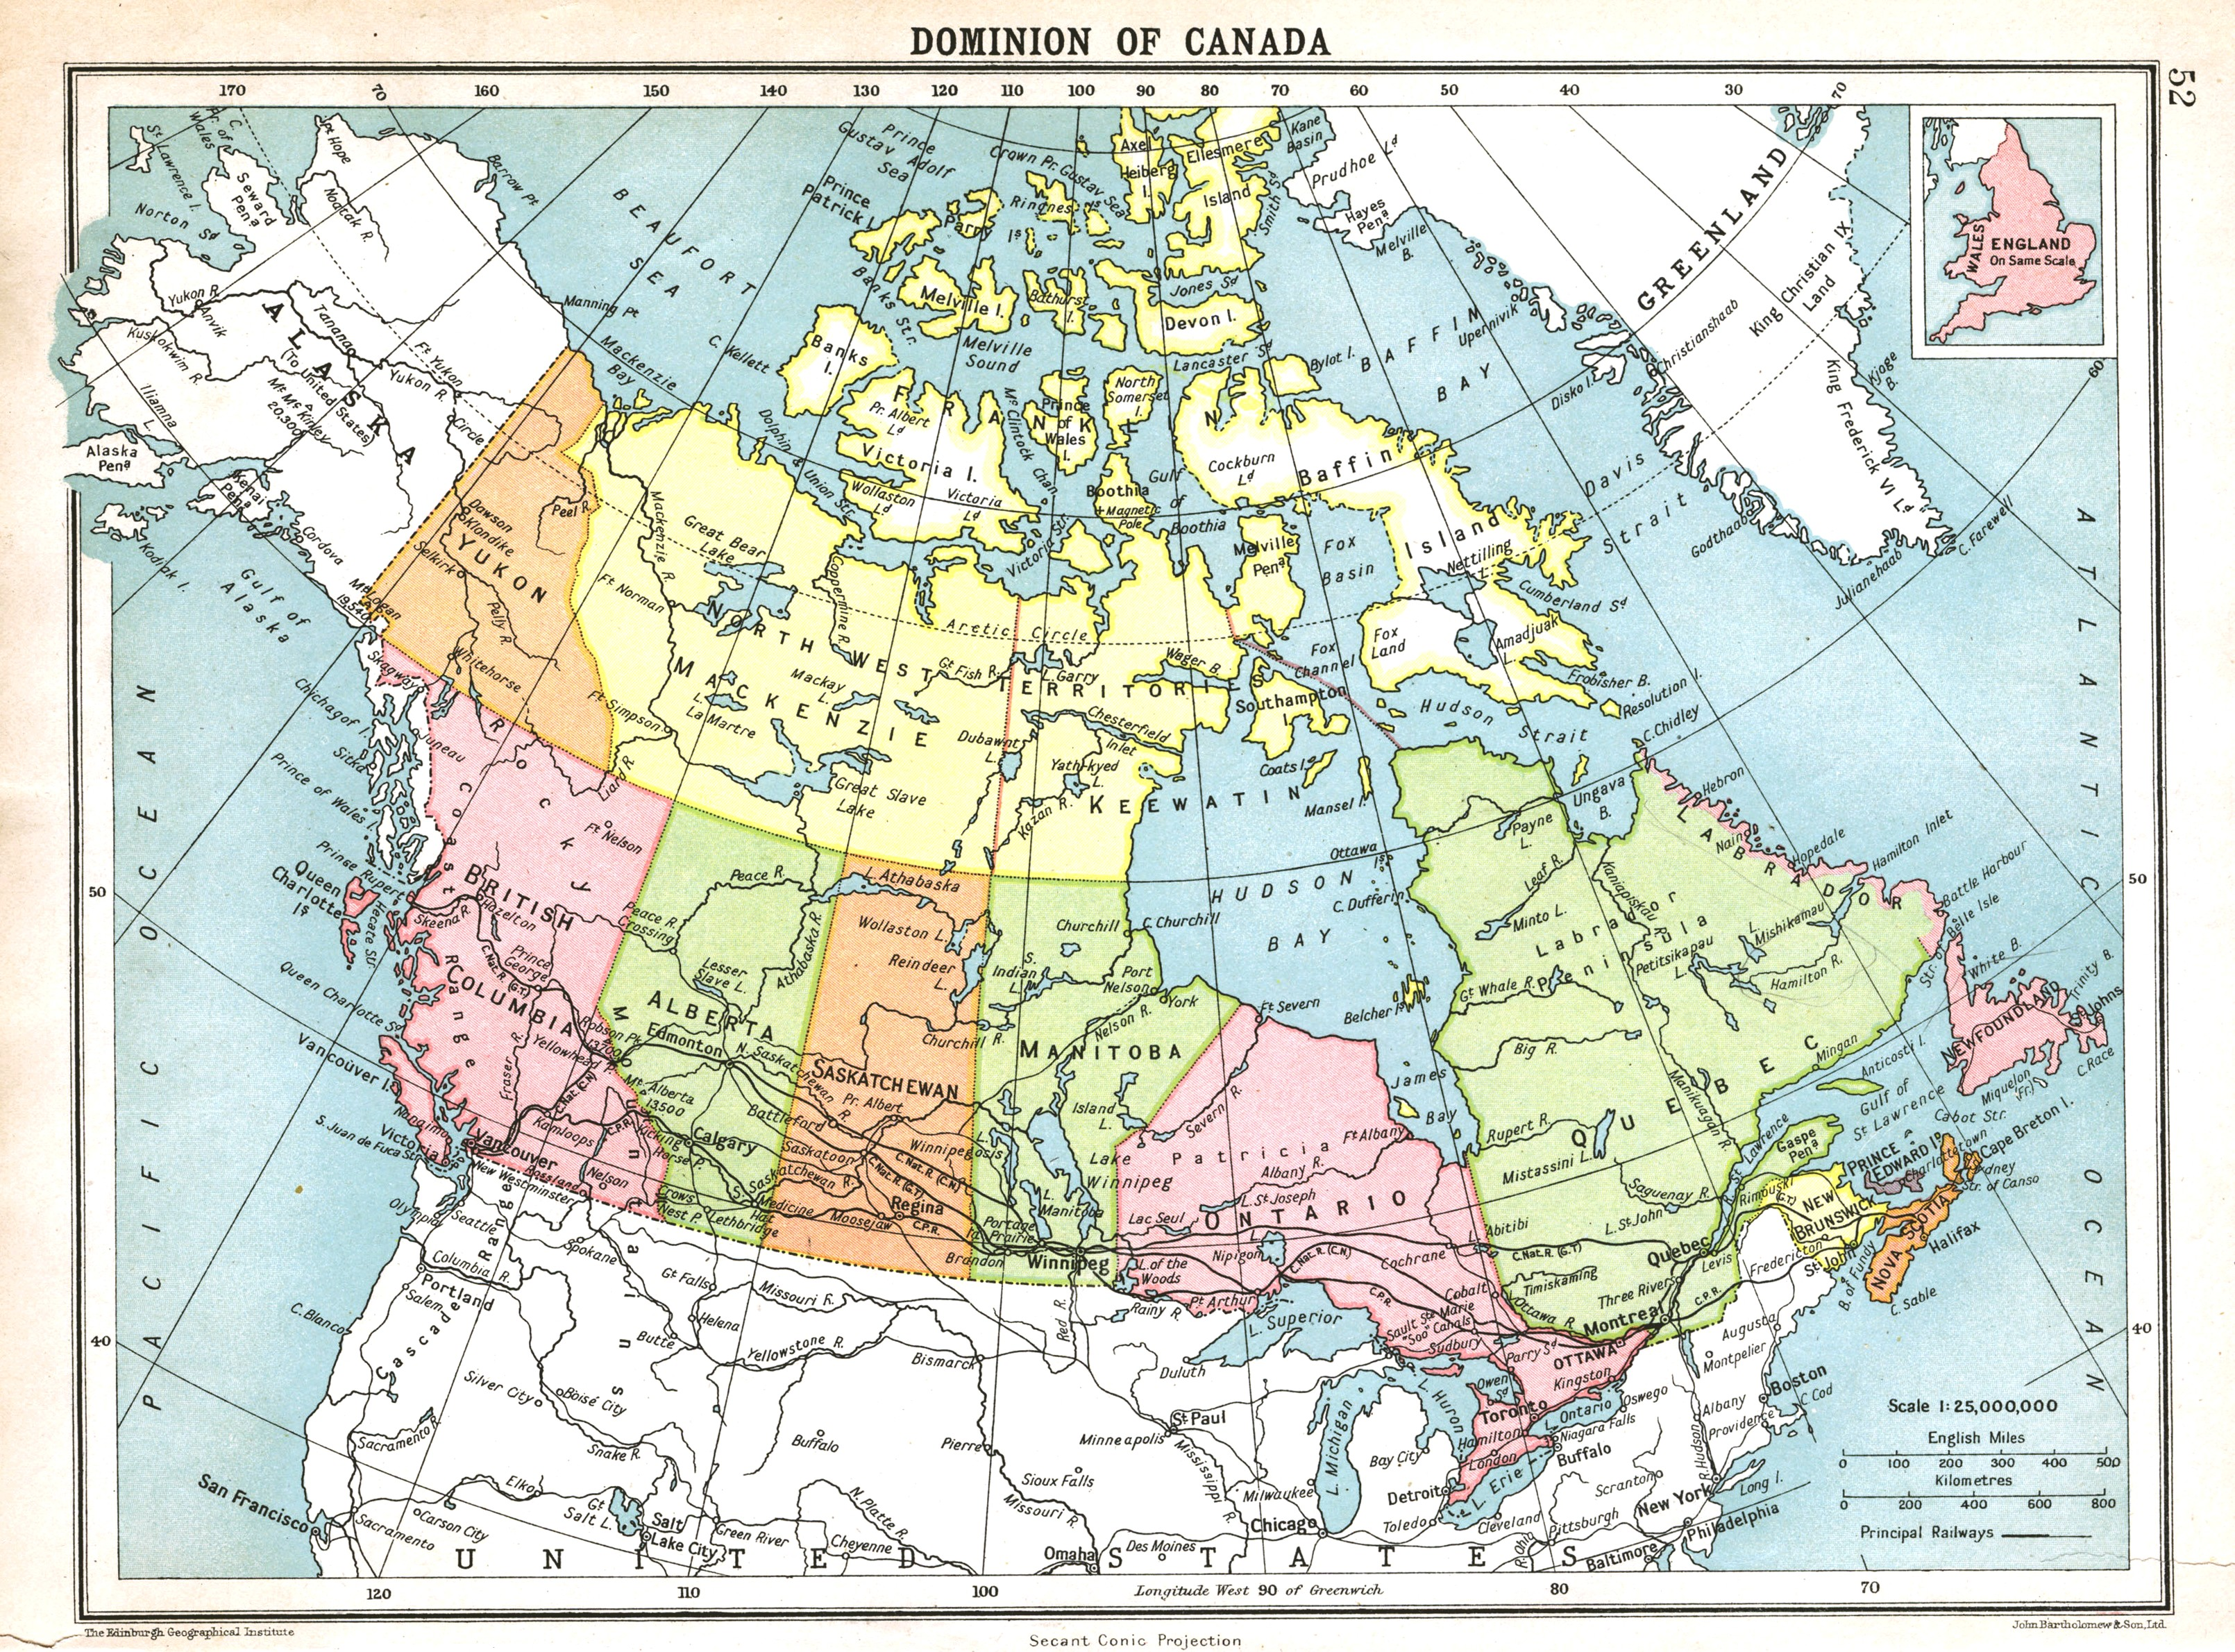 Large Detailed Map Of Canada File:Large detailed old political and administrative map of canada